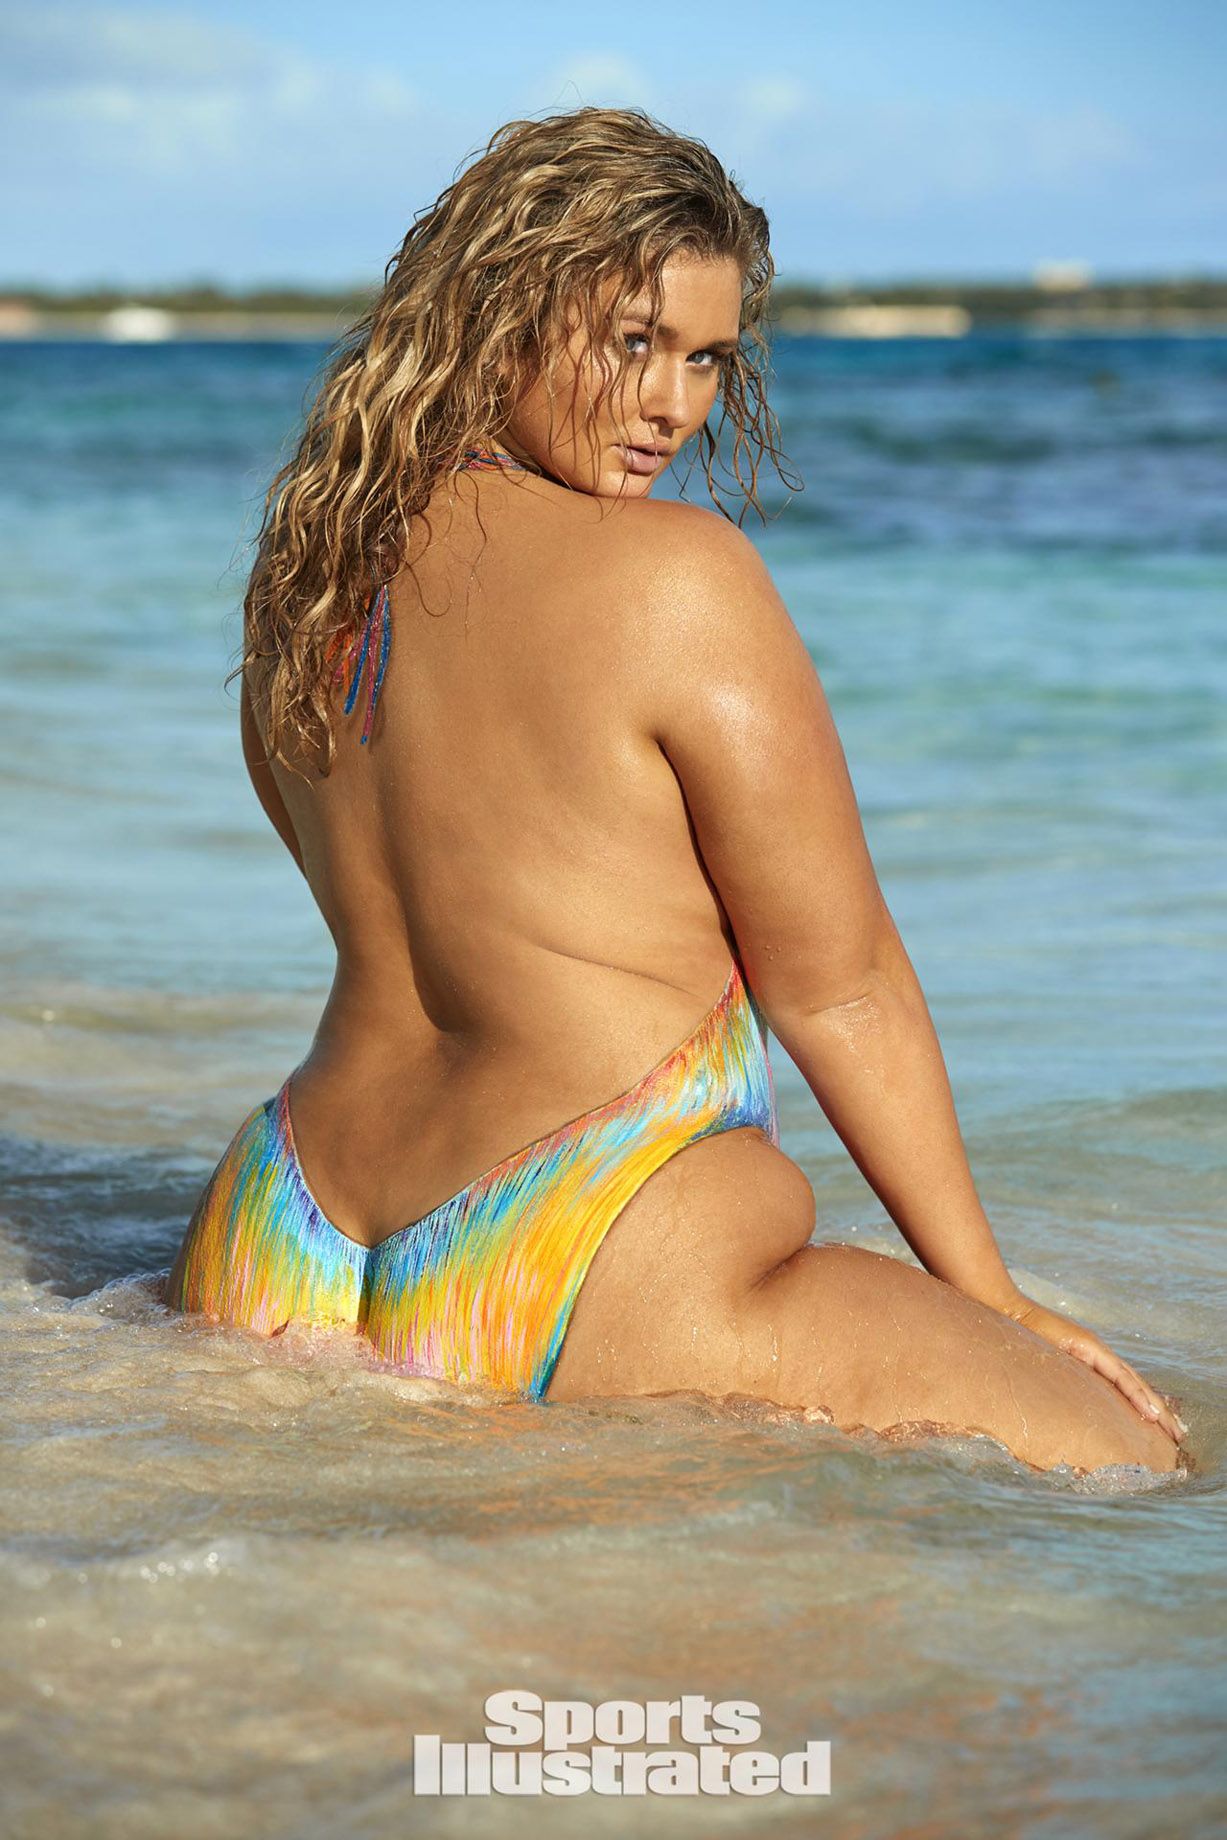 Hunter McGrady / Хантер МакГрэди в боди-арт-купальнике - Sports Illustrated Swimsuit 2017 issue / in Anguilla by Josephine Clough